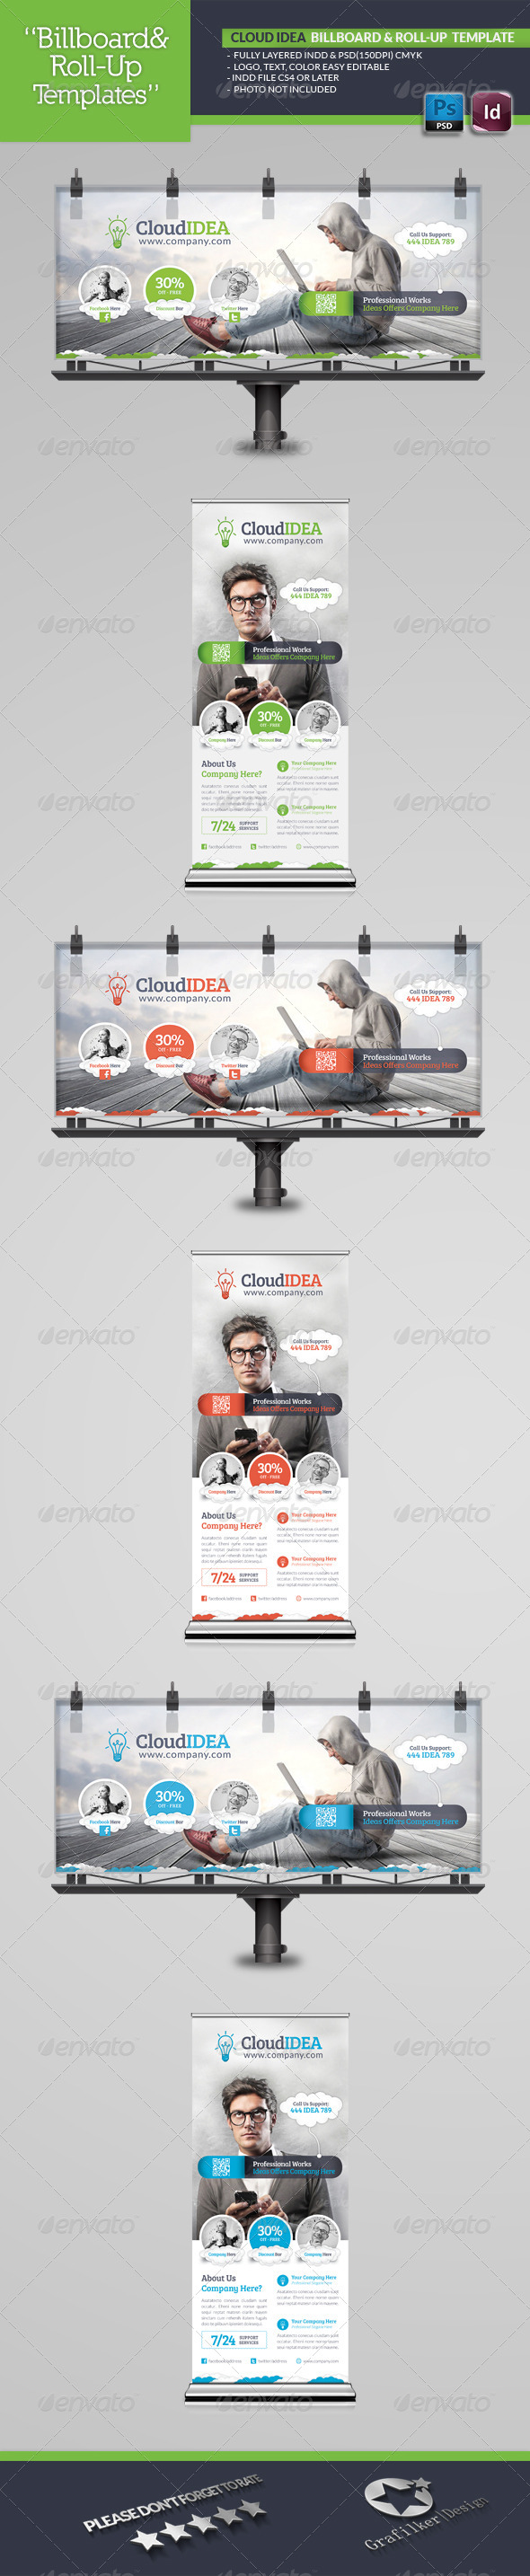 GraphicRiver Cloud Idea Billboard & Roll-Up Template 5387970